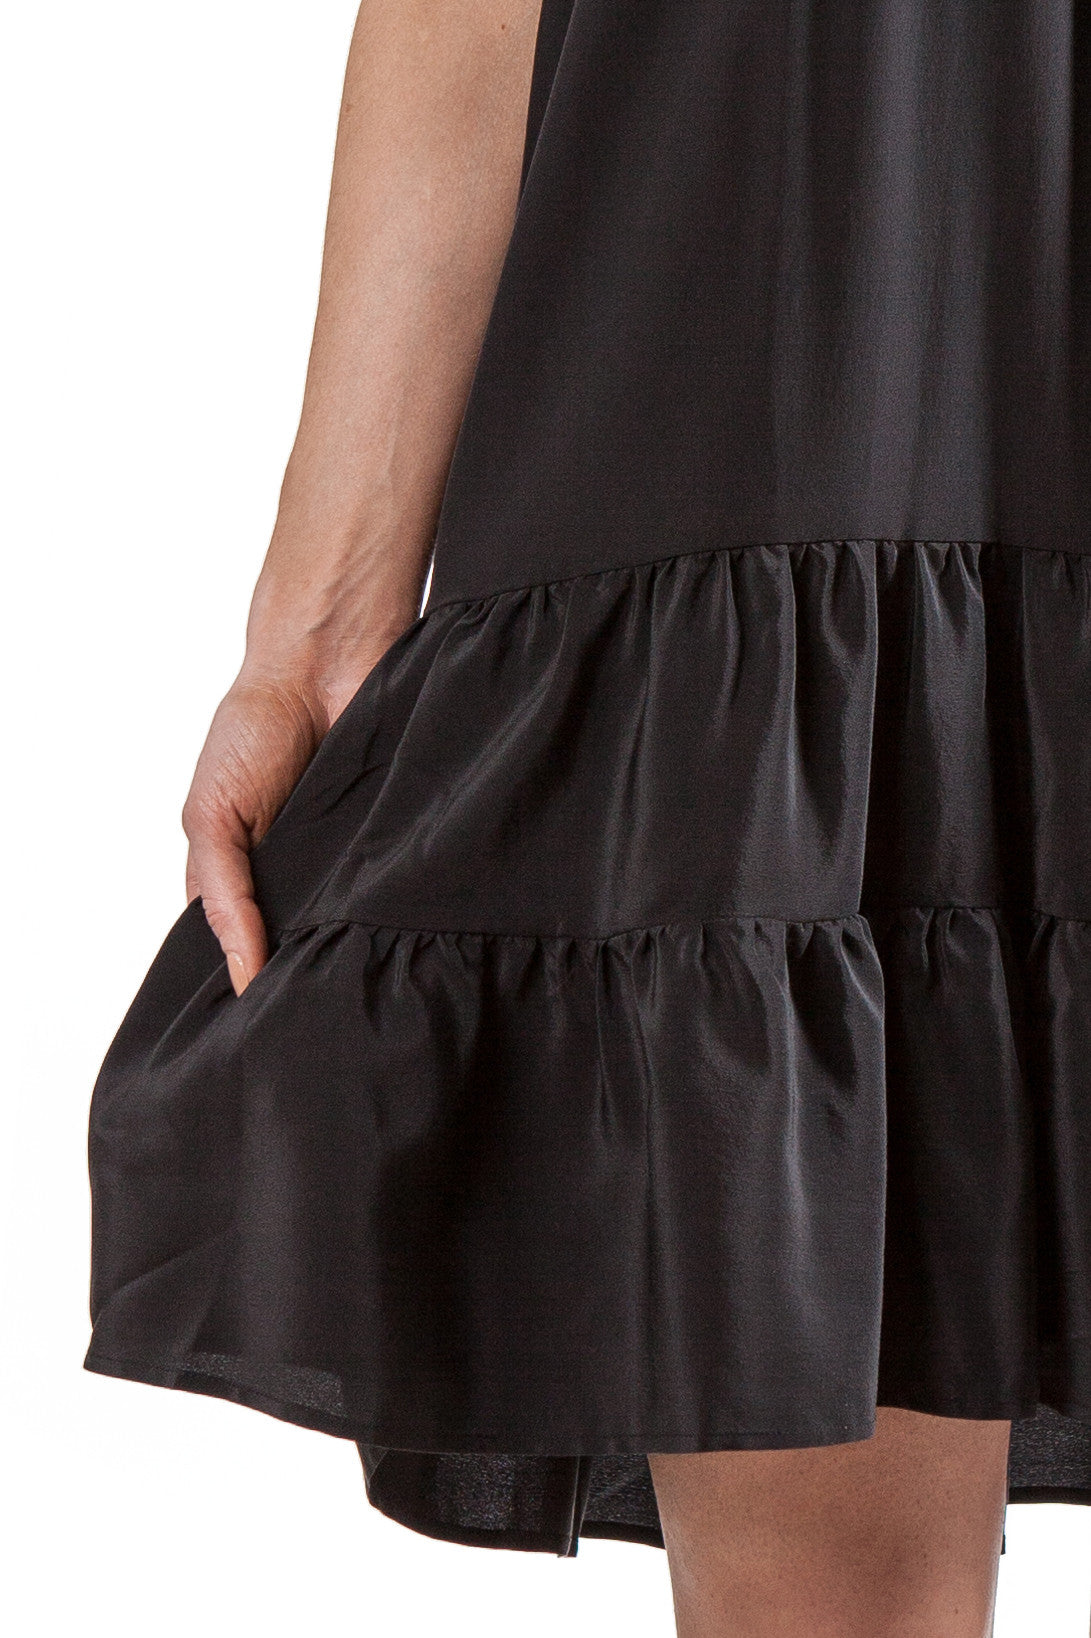 Black short ruffled dress | Silk Crepe de Chine